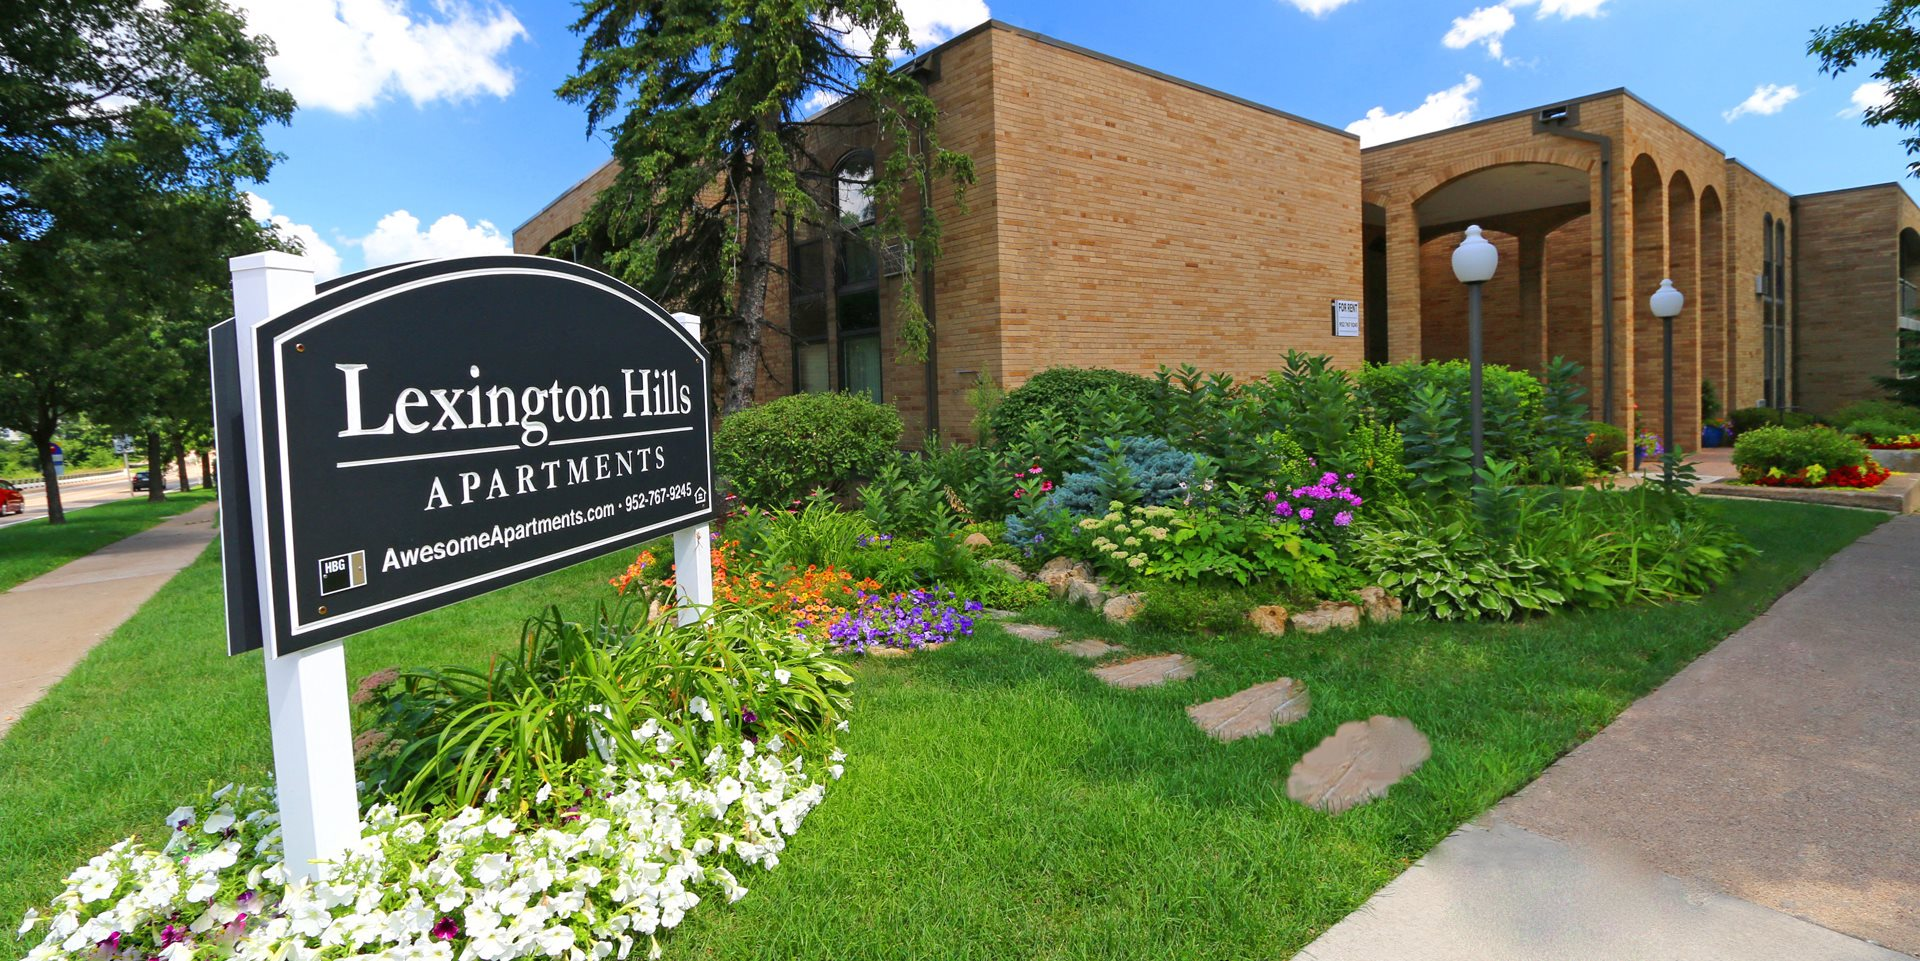 Lexington Hills Apartments Apartments In St Paul Mn